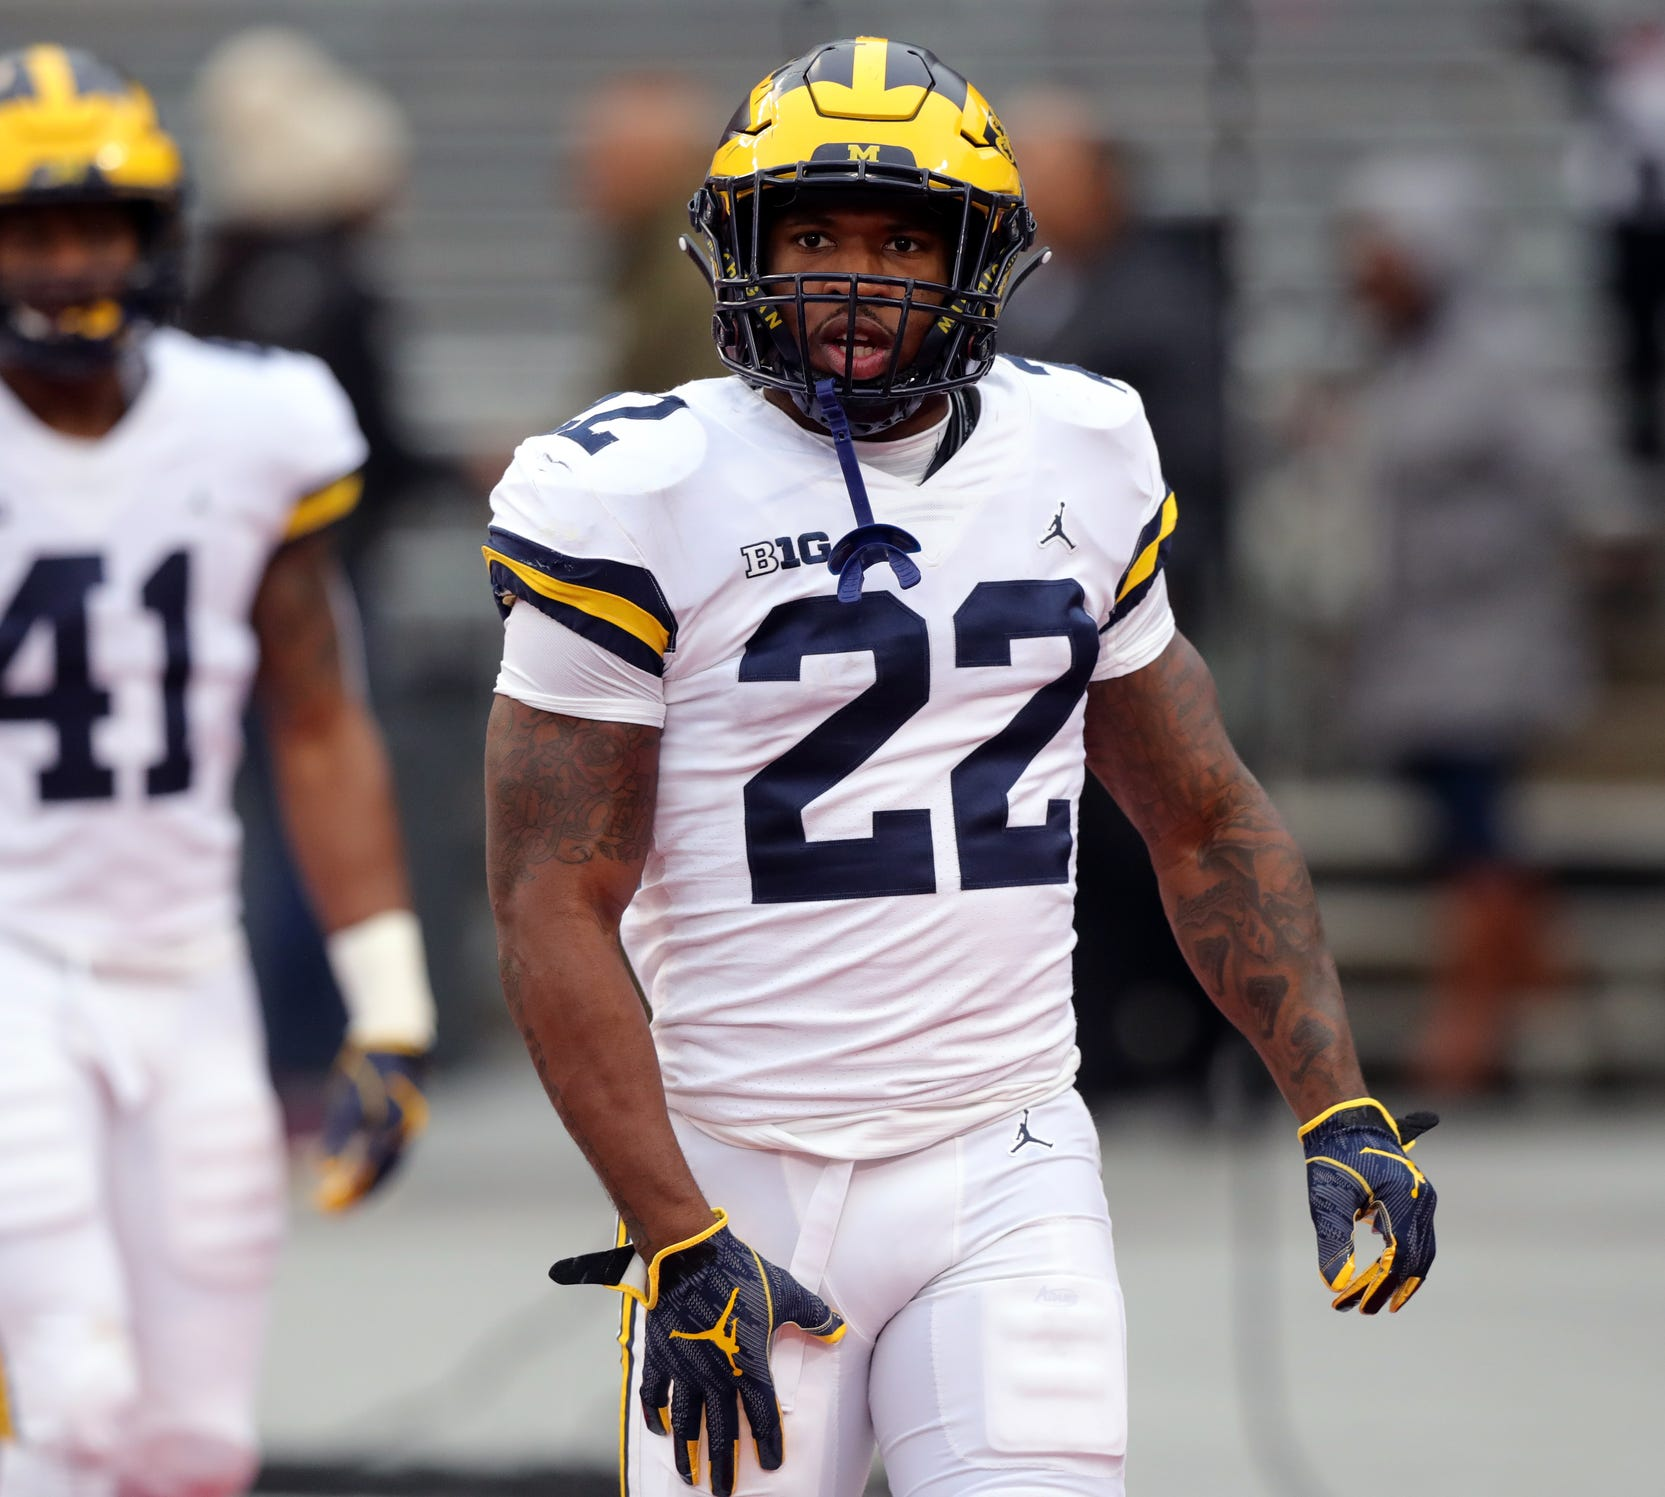 Michigan running back Karan Higdon warms up before action against Ohio State.